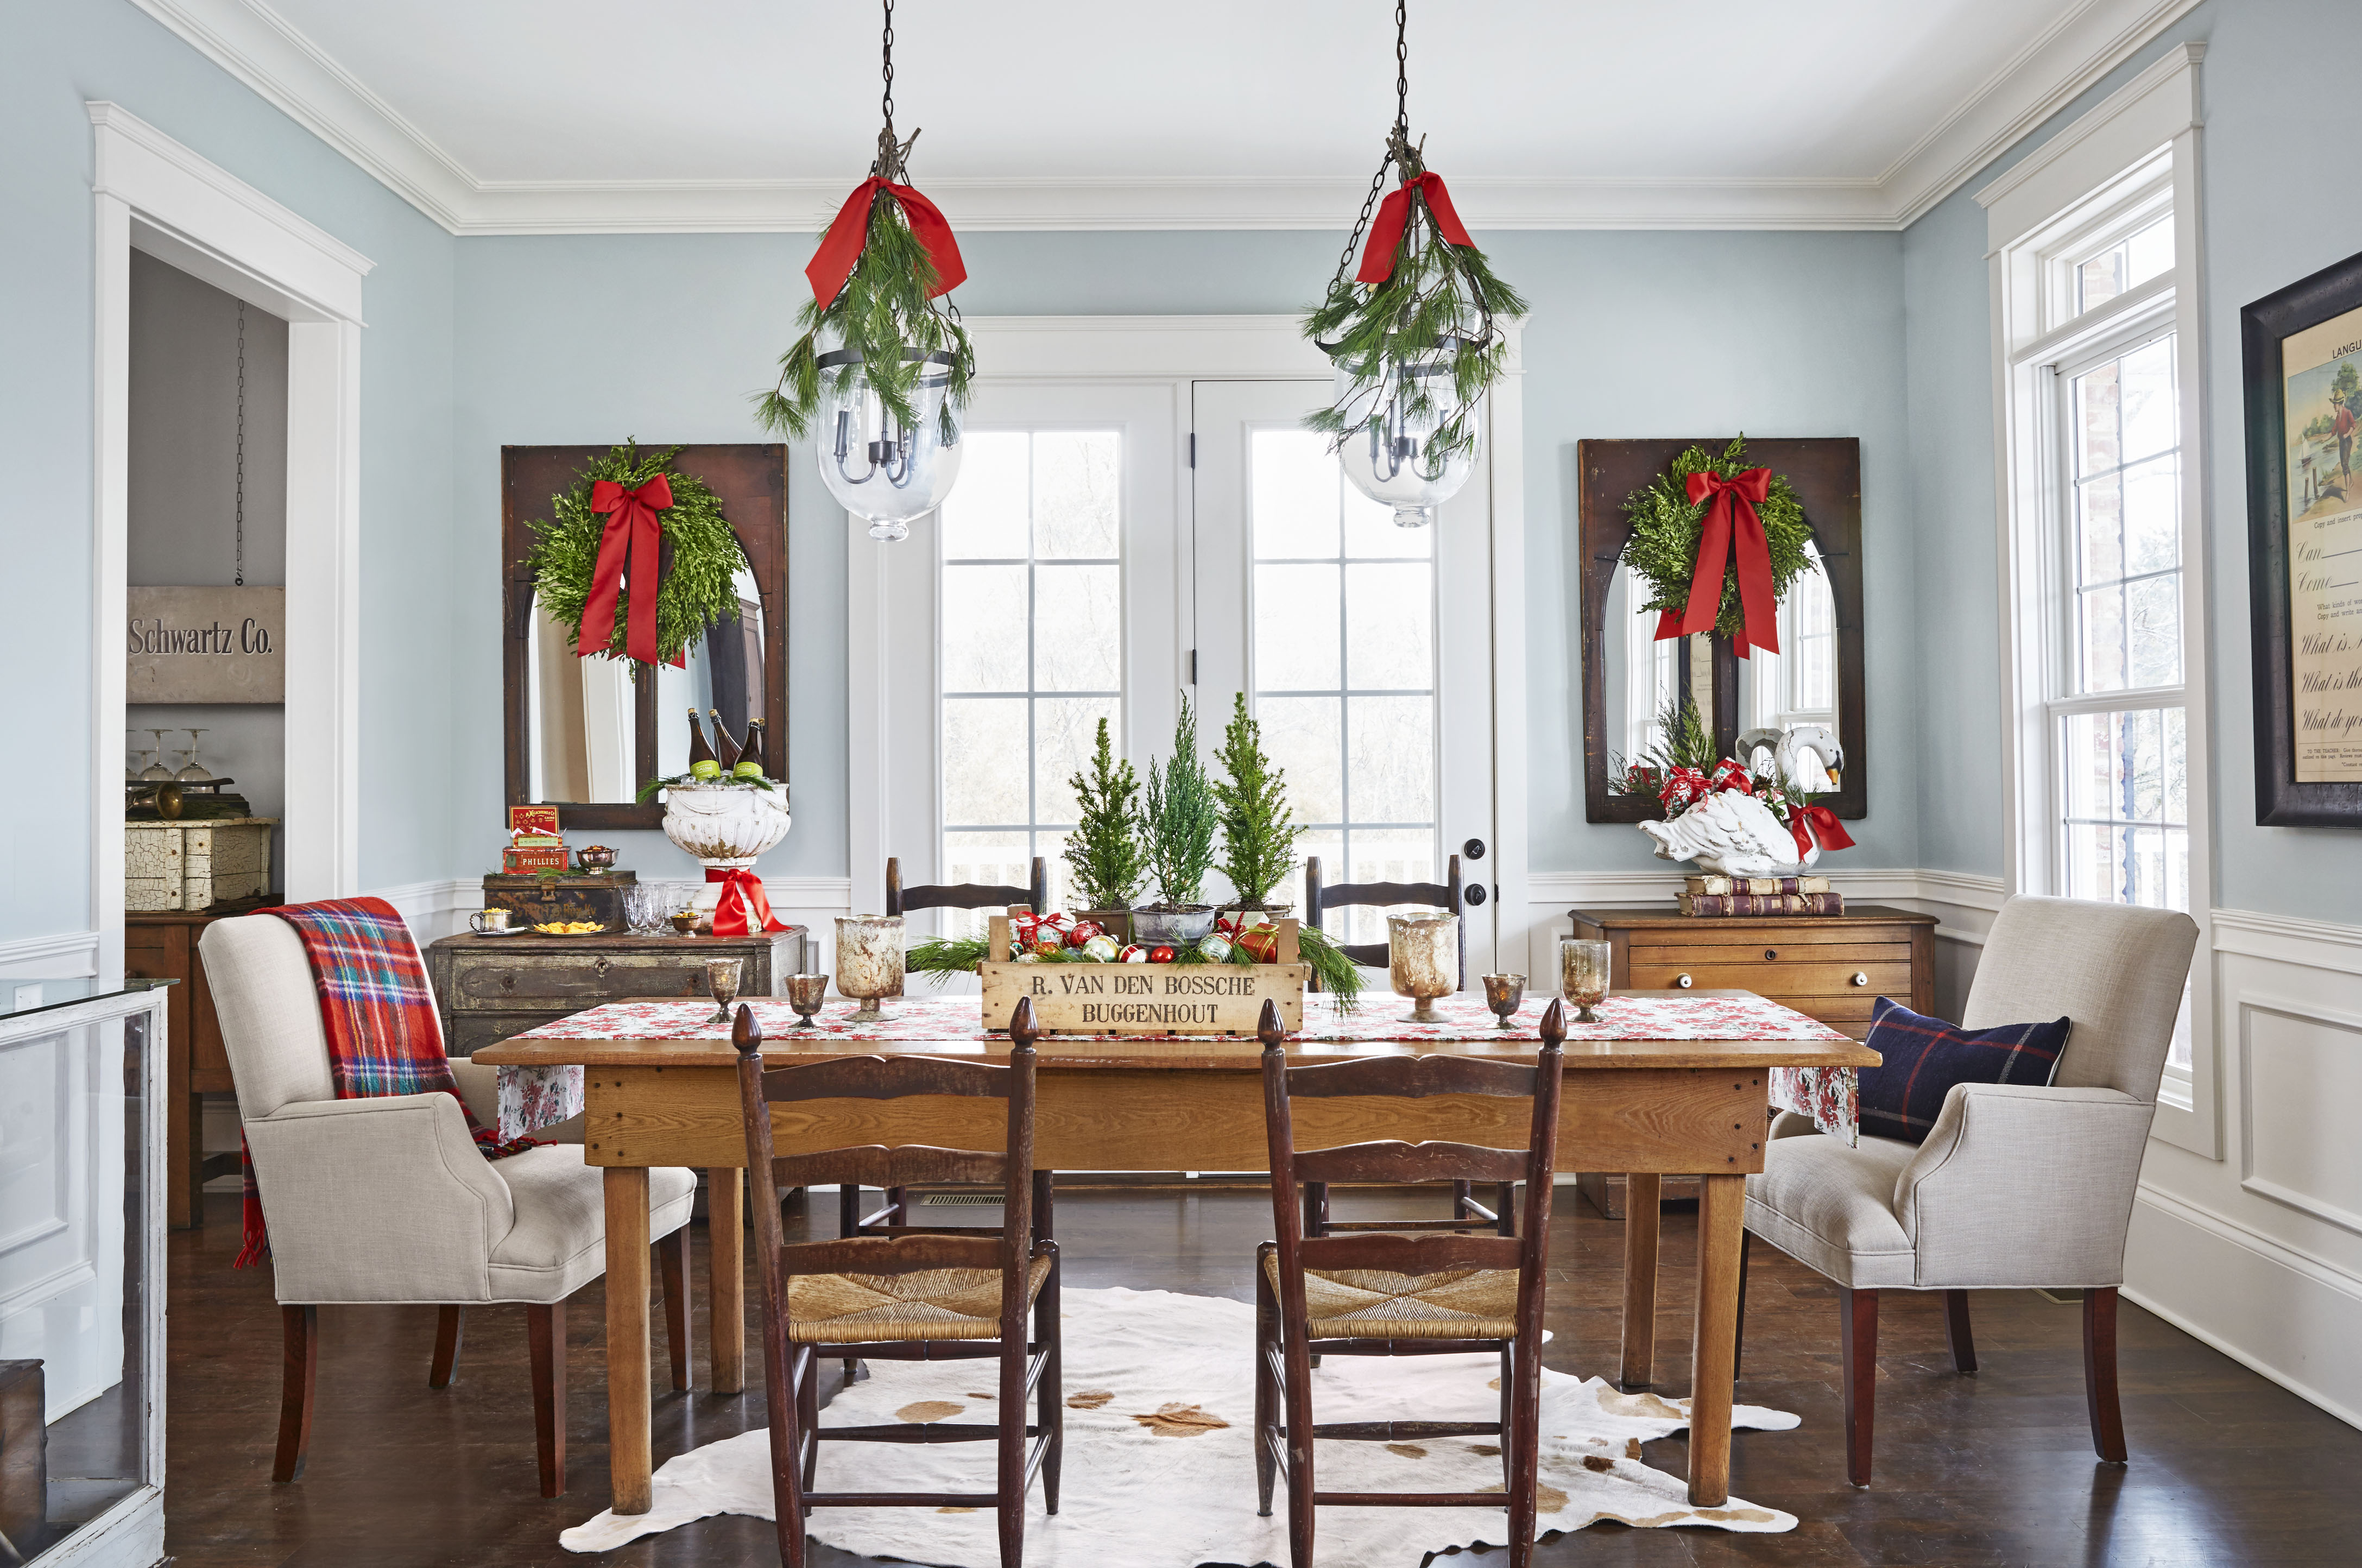 Decorating Dining Room Ideas 47 Best Christmas Table Settings  Decorations And Centerpiece